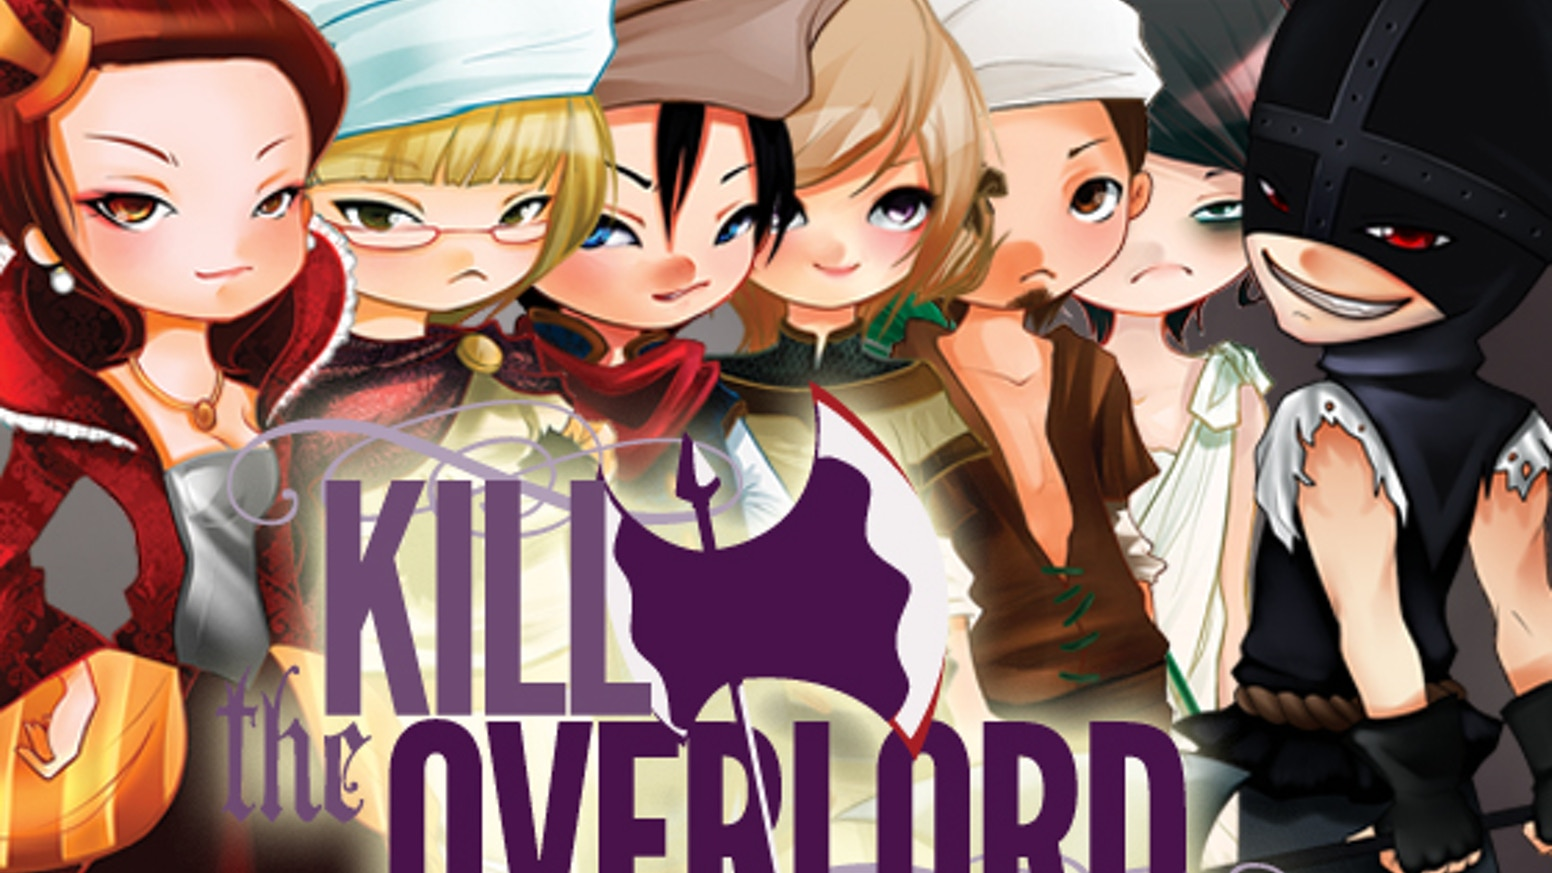 Who will be first to lose their head? Once the axe swings, not even the Overlord is safe! KTO is a party game for 4-8 rapscallions. You can still get KTO - just click the button below!